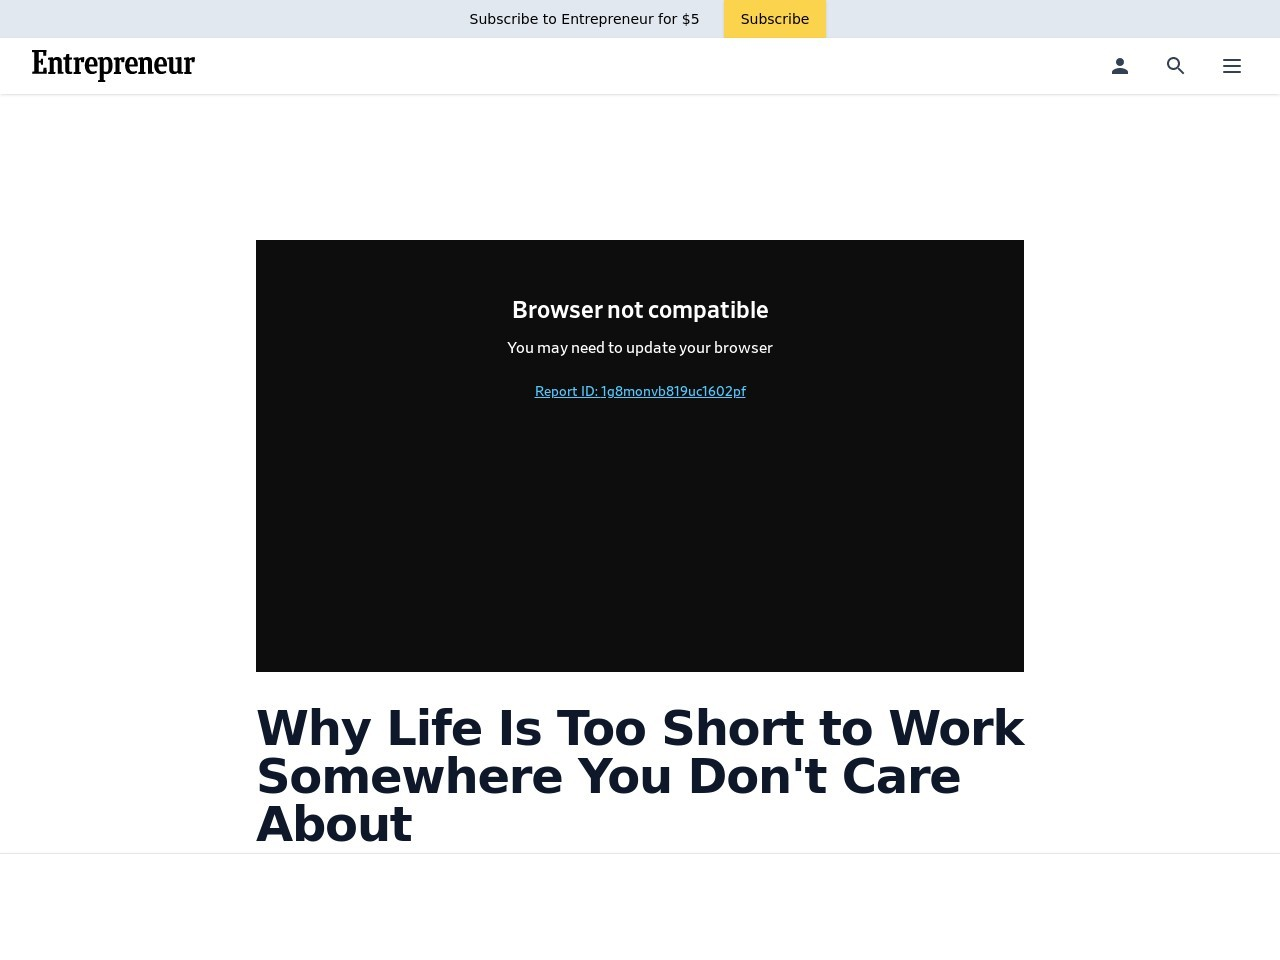 Why Life Is Too Short to Work Somewhere You Don't Care About